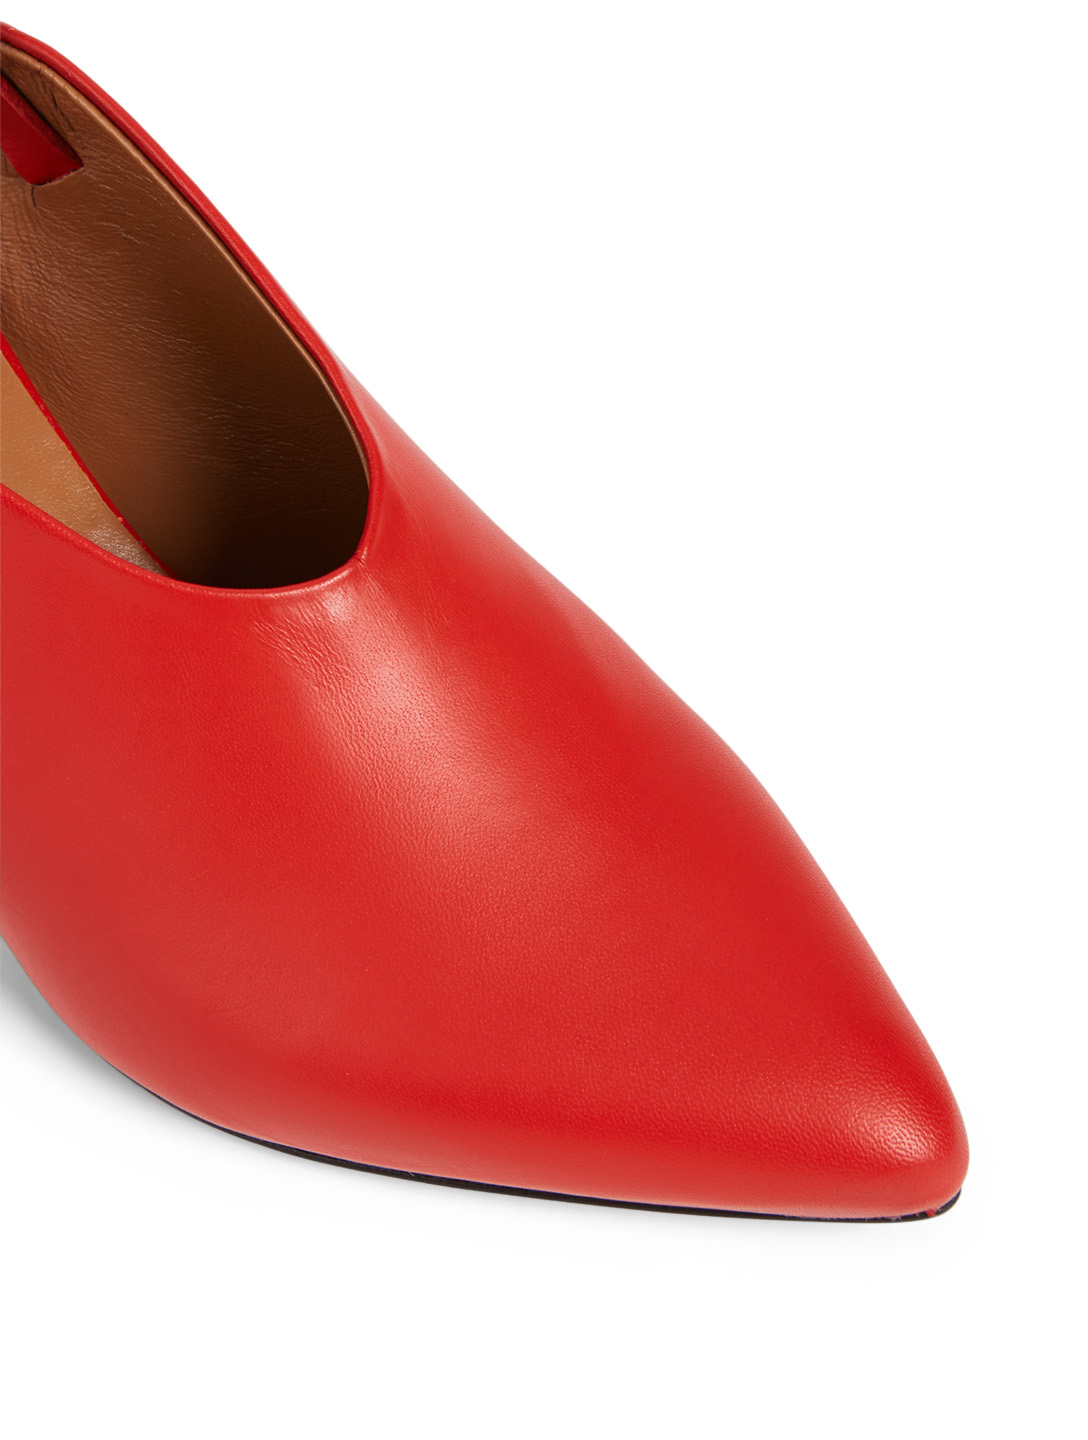 ATP ATELIER Abra Leather Slingback Pumps Women's Red